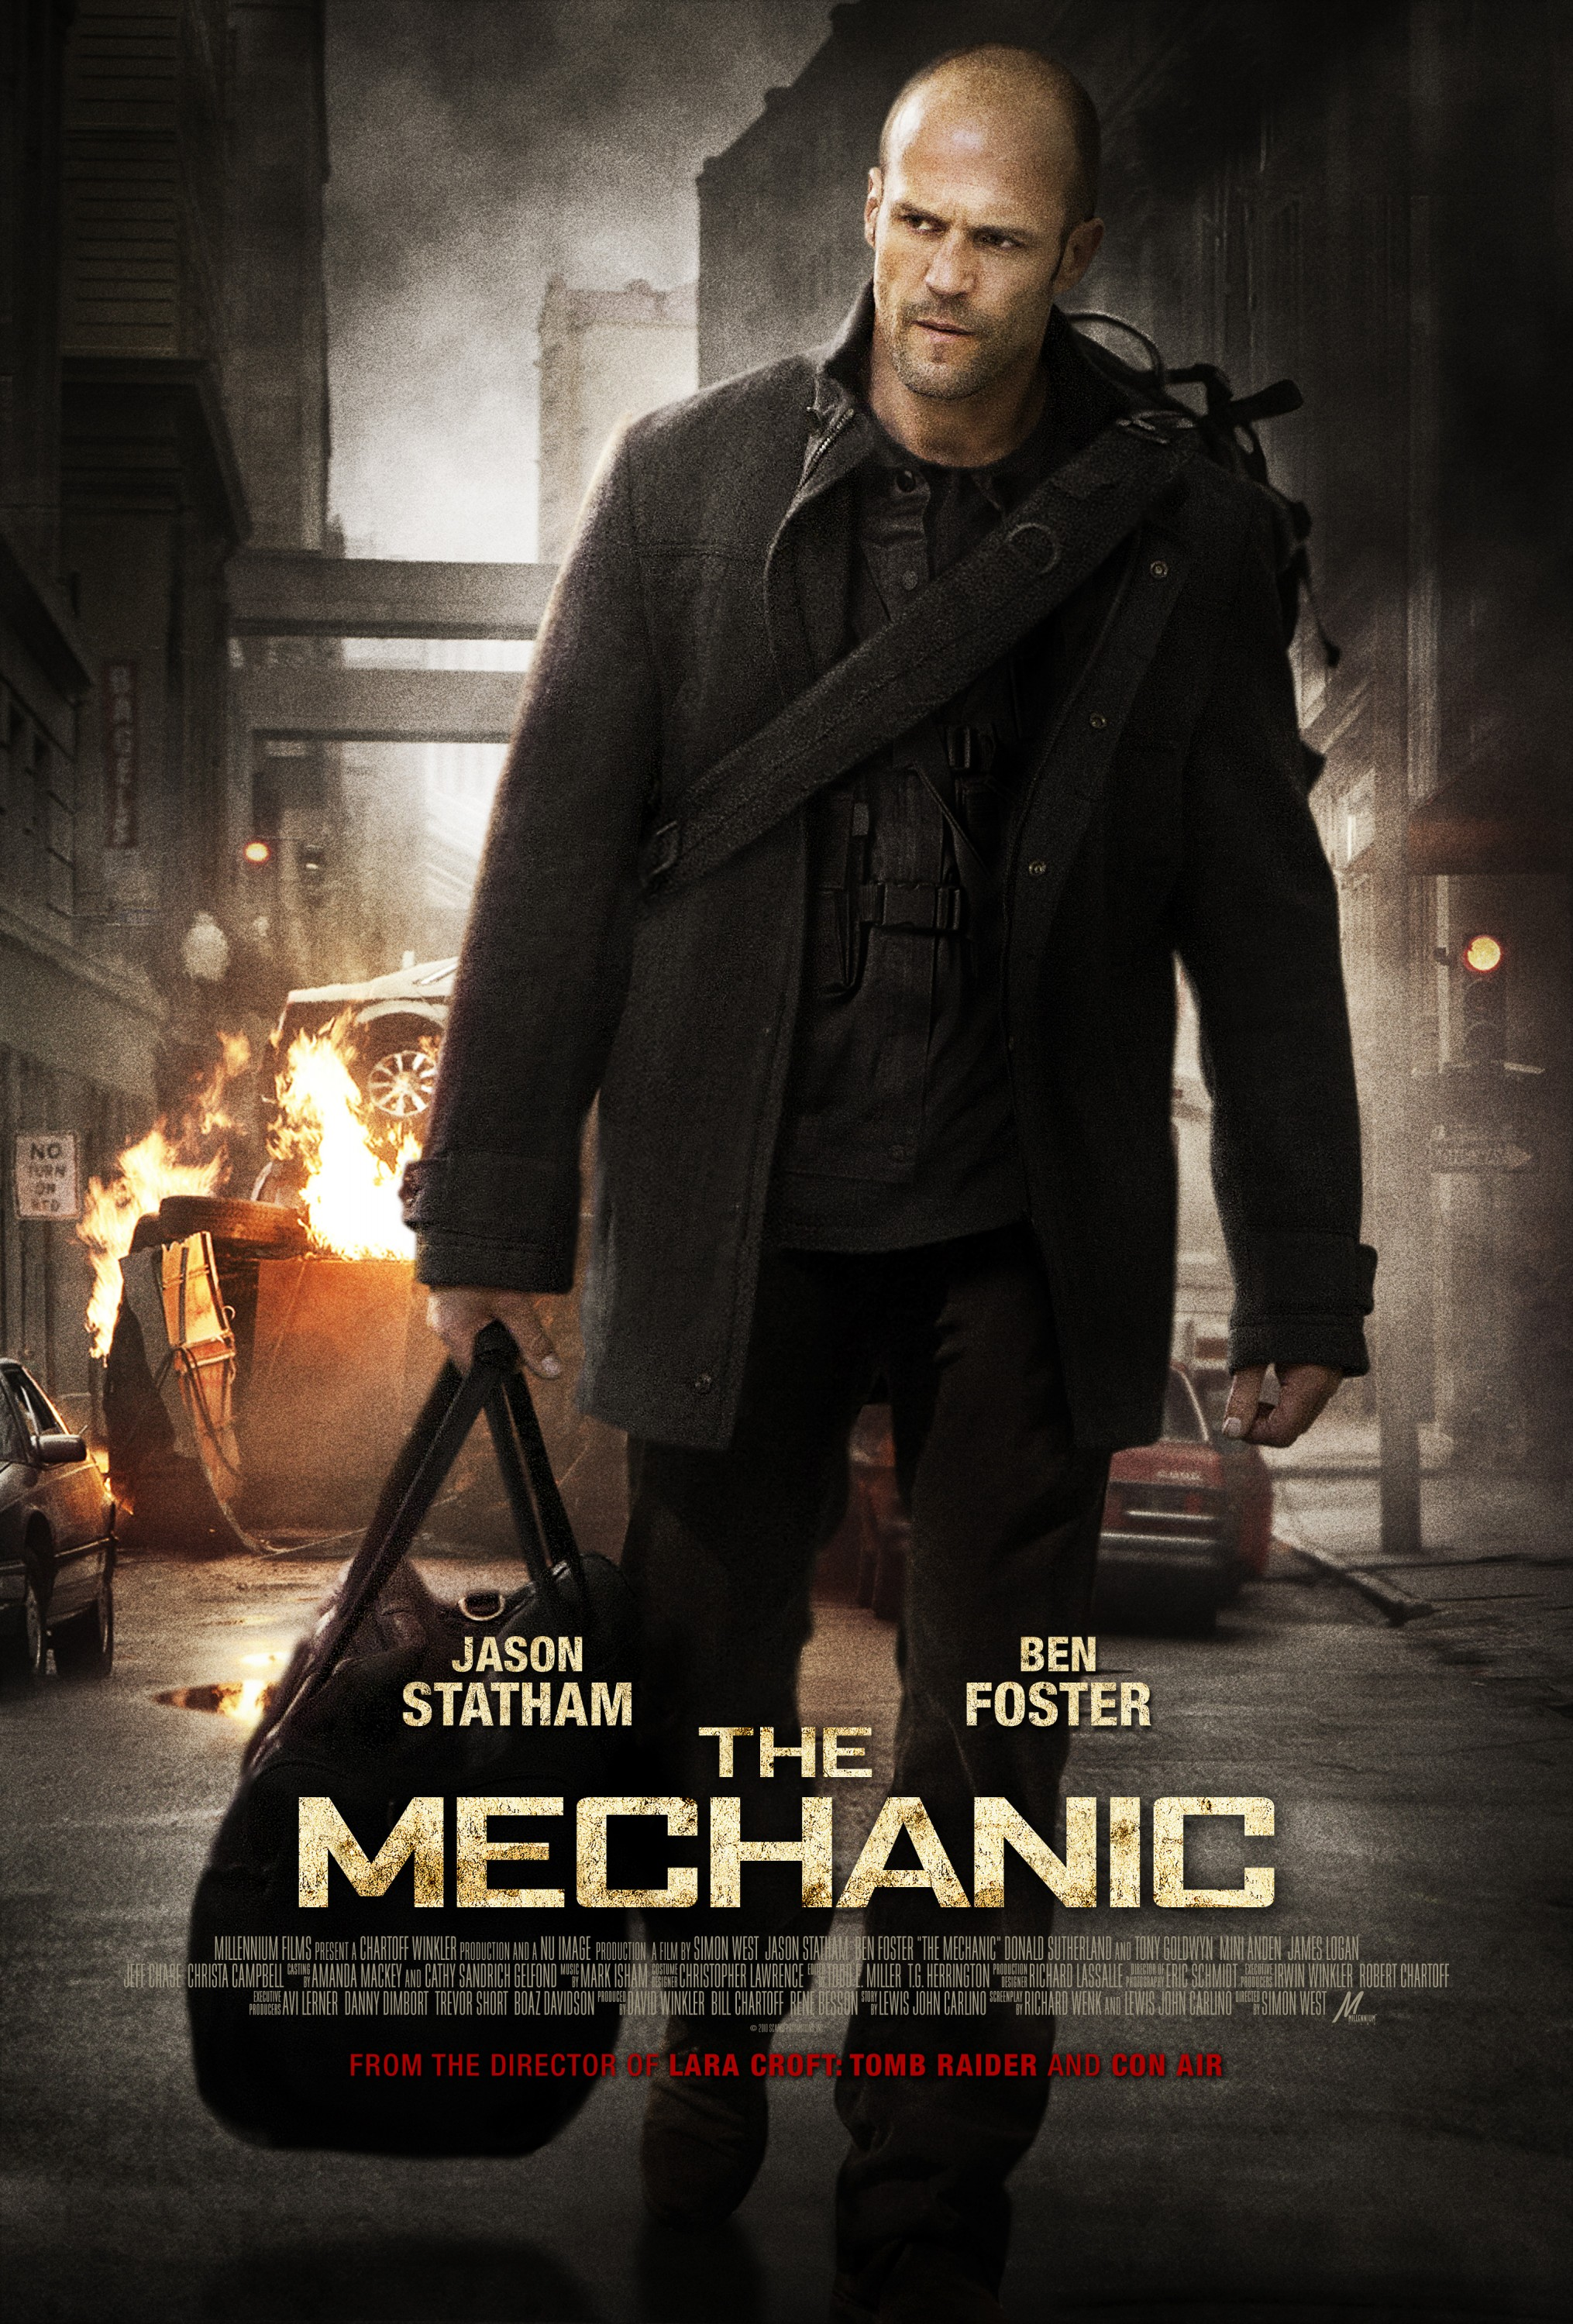 The Mechanic Trailer